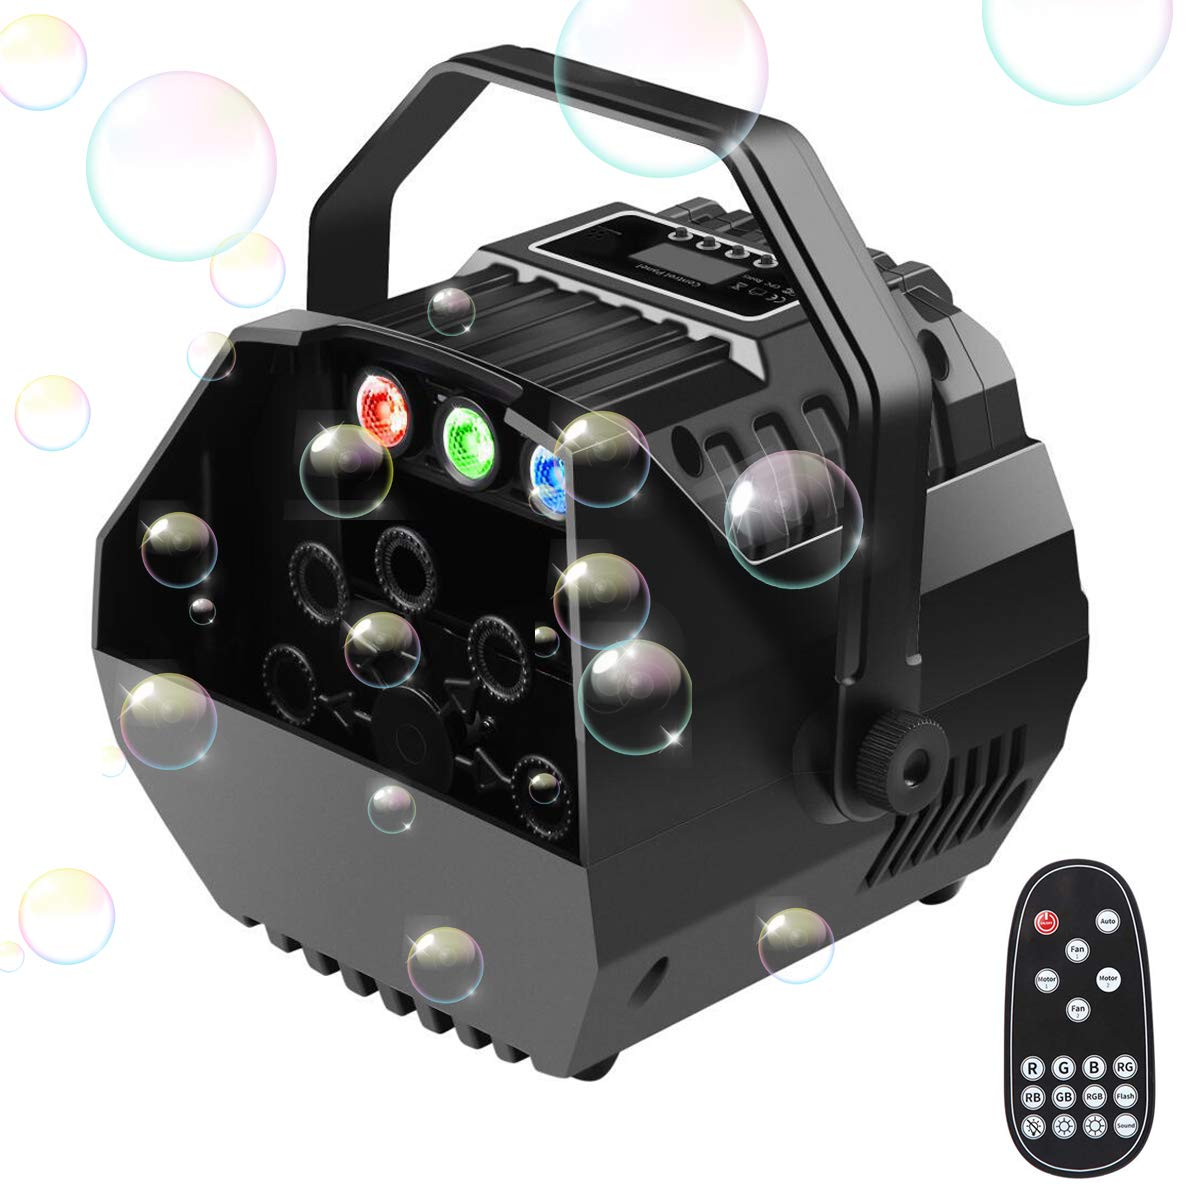 Easife 2019 New Portable Bubble Machine for Kids Party Automatic Bubble Maker Bubble Blower with LED Lights&Operation Panel Wireless Remote Control Powered by Plug-in or Batteries Outdoor/Indoor Use by Easife